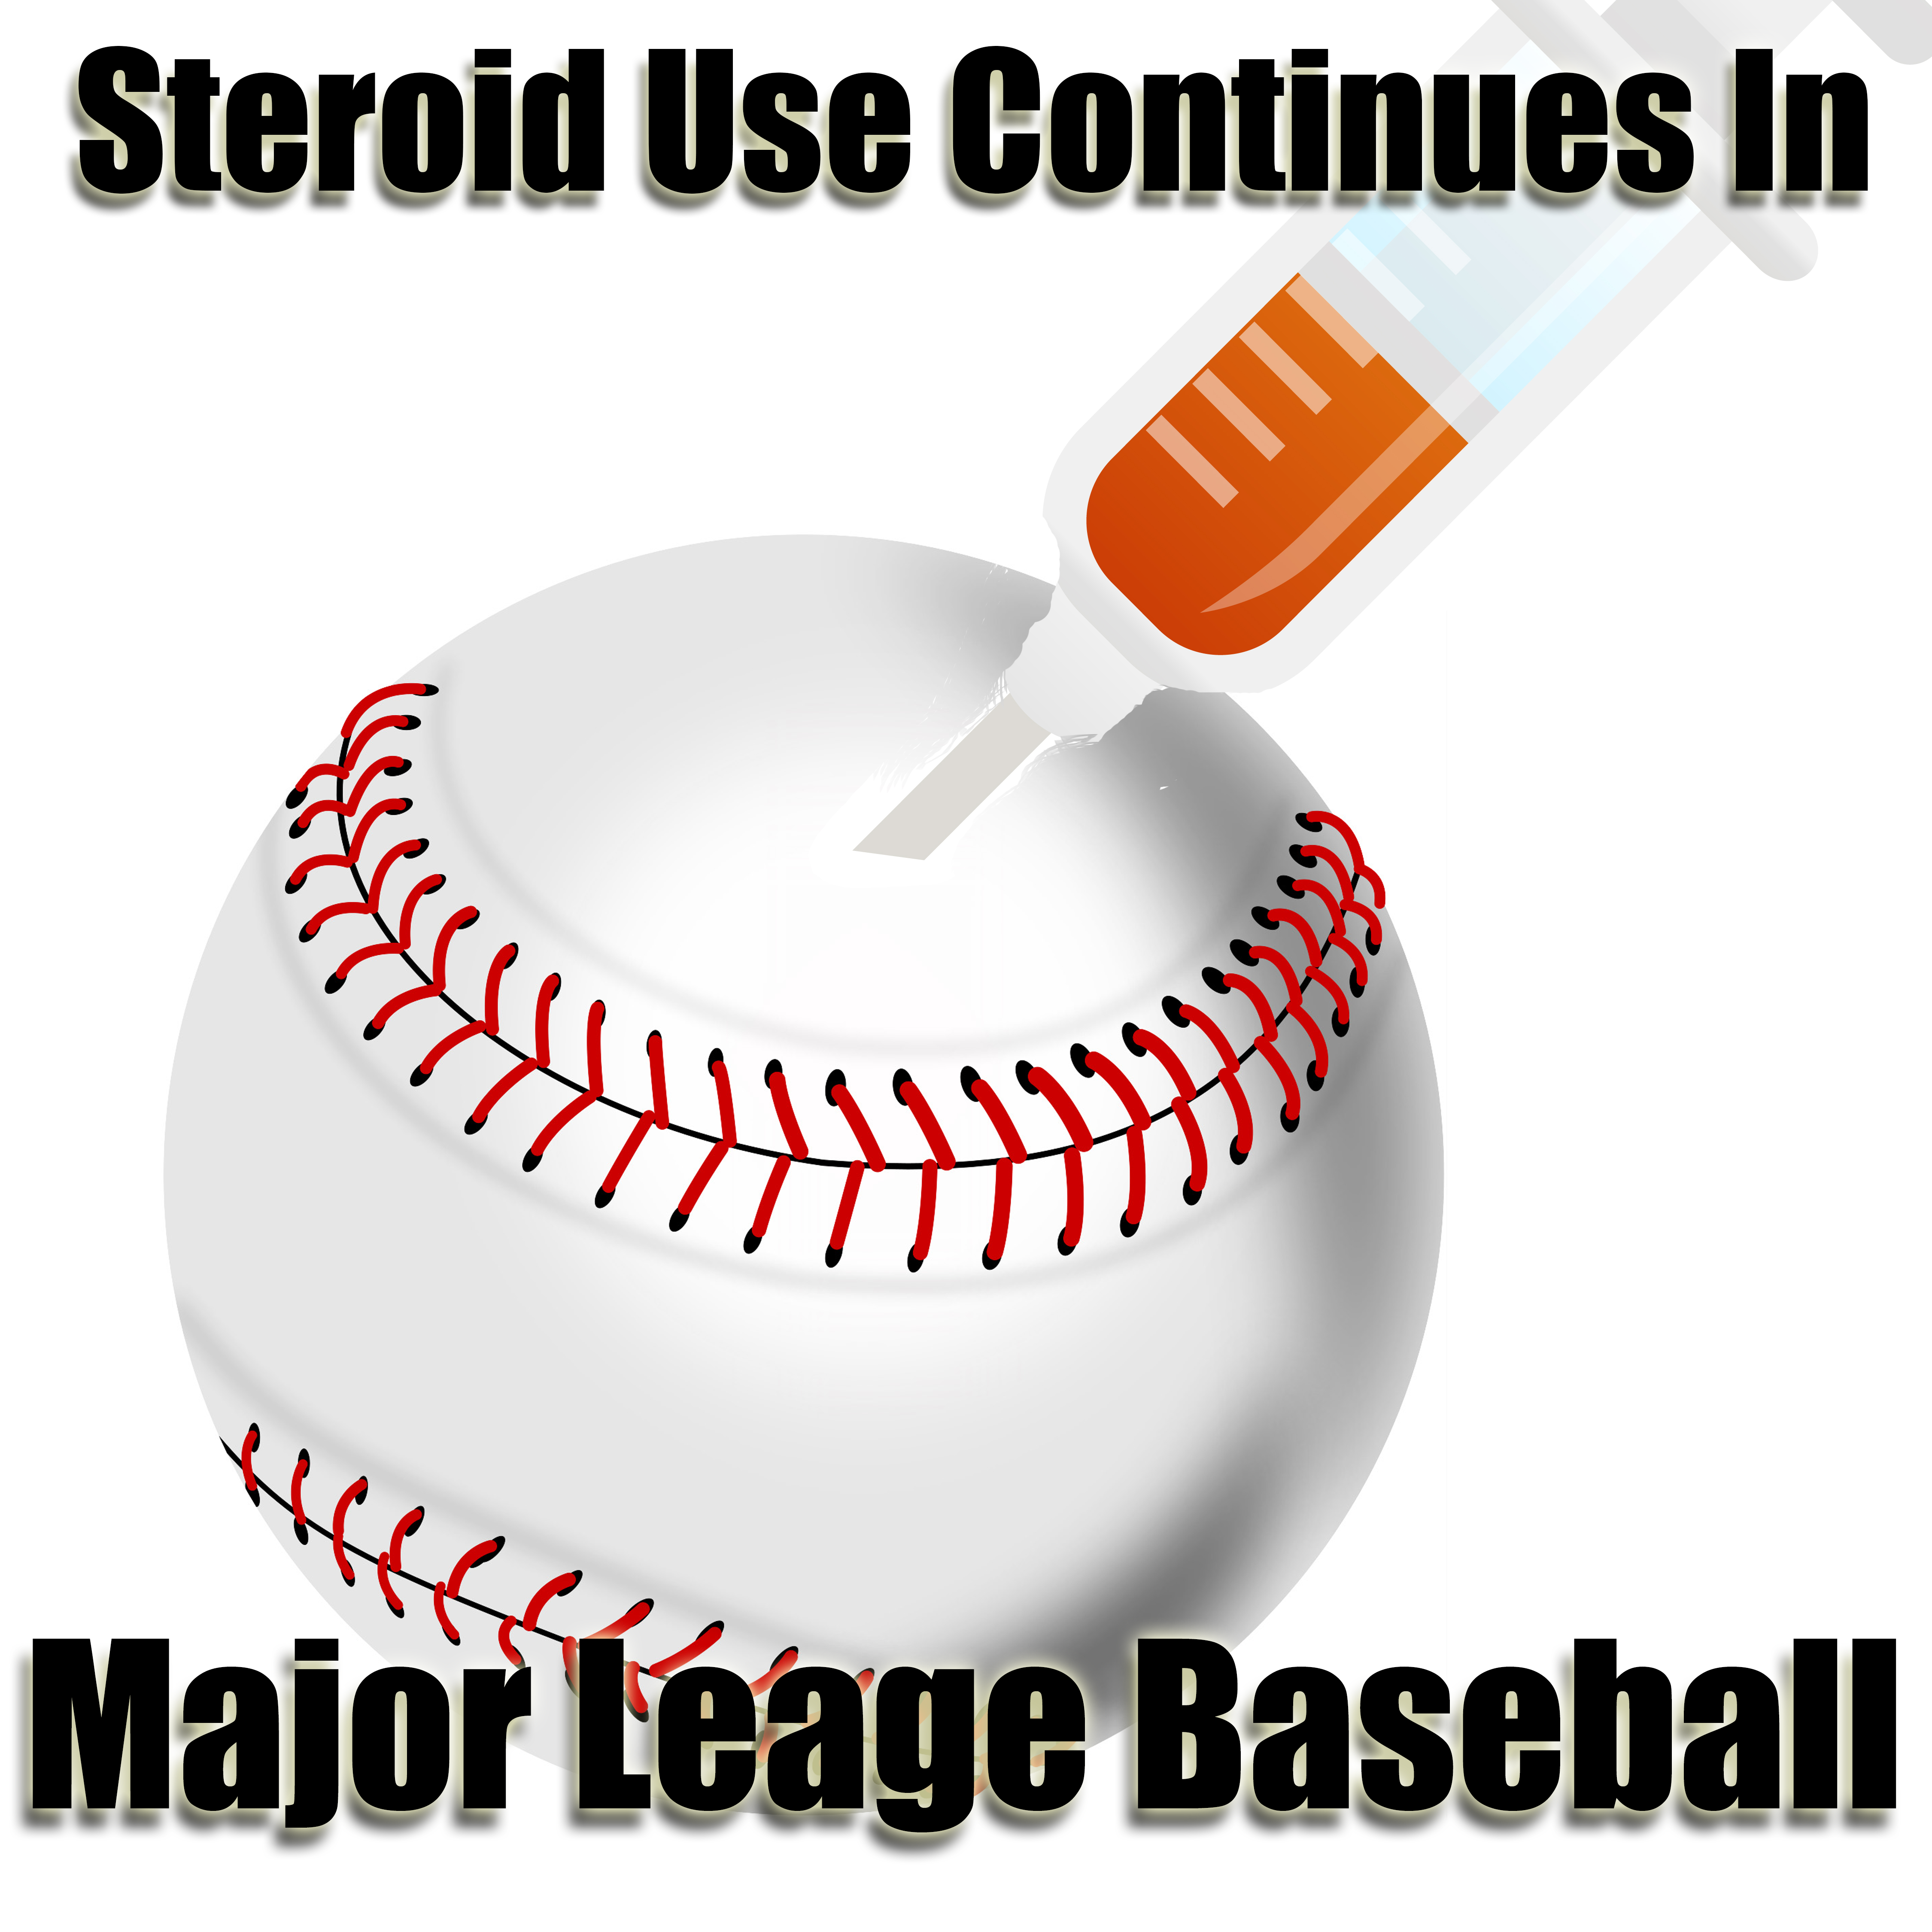 steroids abuse in baseball Timeline: steroids and baseball plus drugs of abuse distributing steroids to major league players and was cooperating with baseball's steroids.